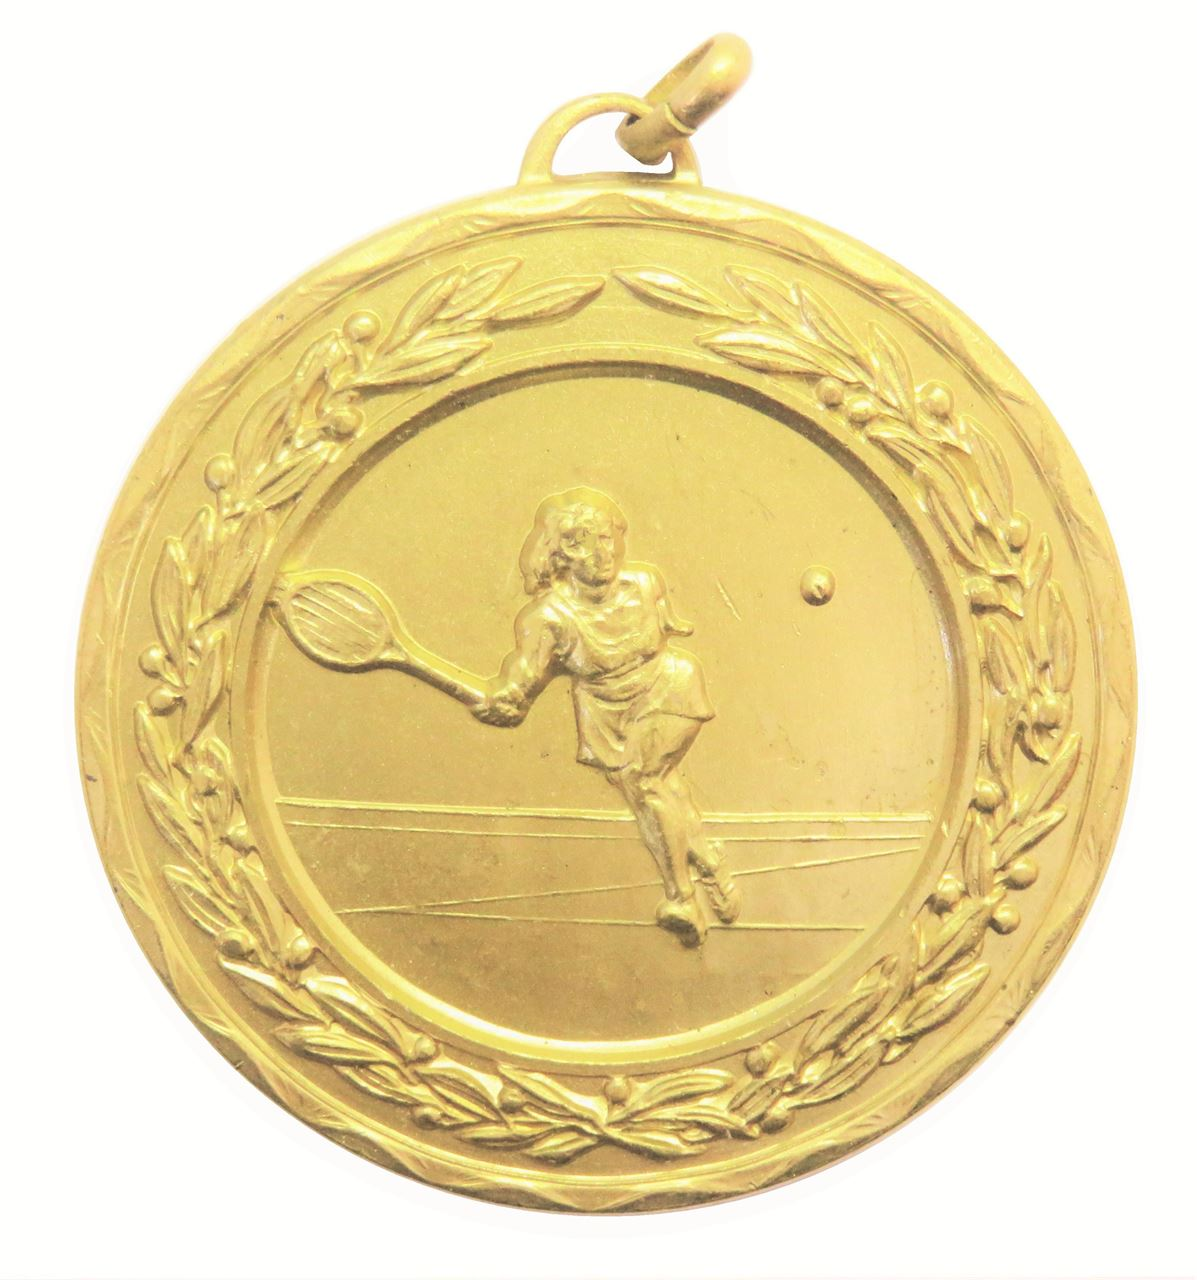 Gold Laurel Economy Ladies Tennis Medal (size: 50mm) - 4175E